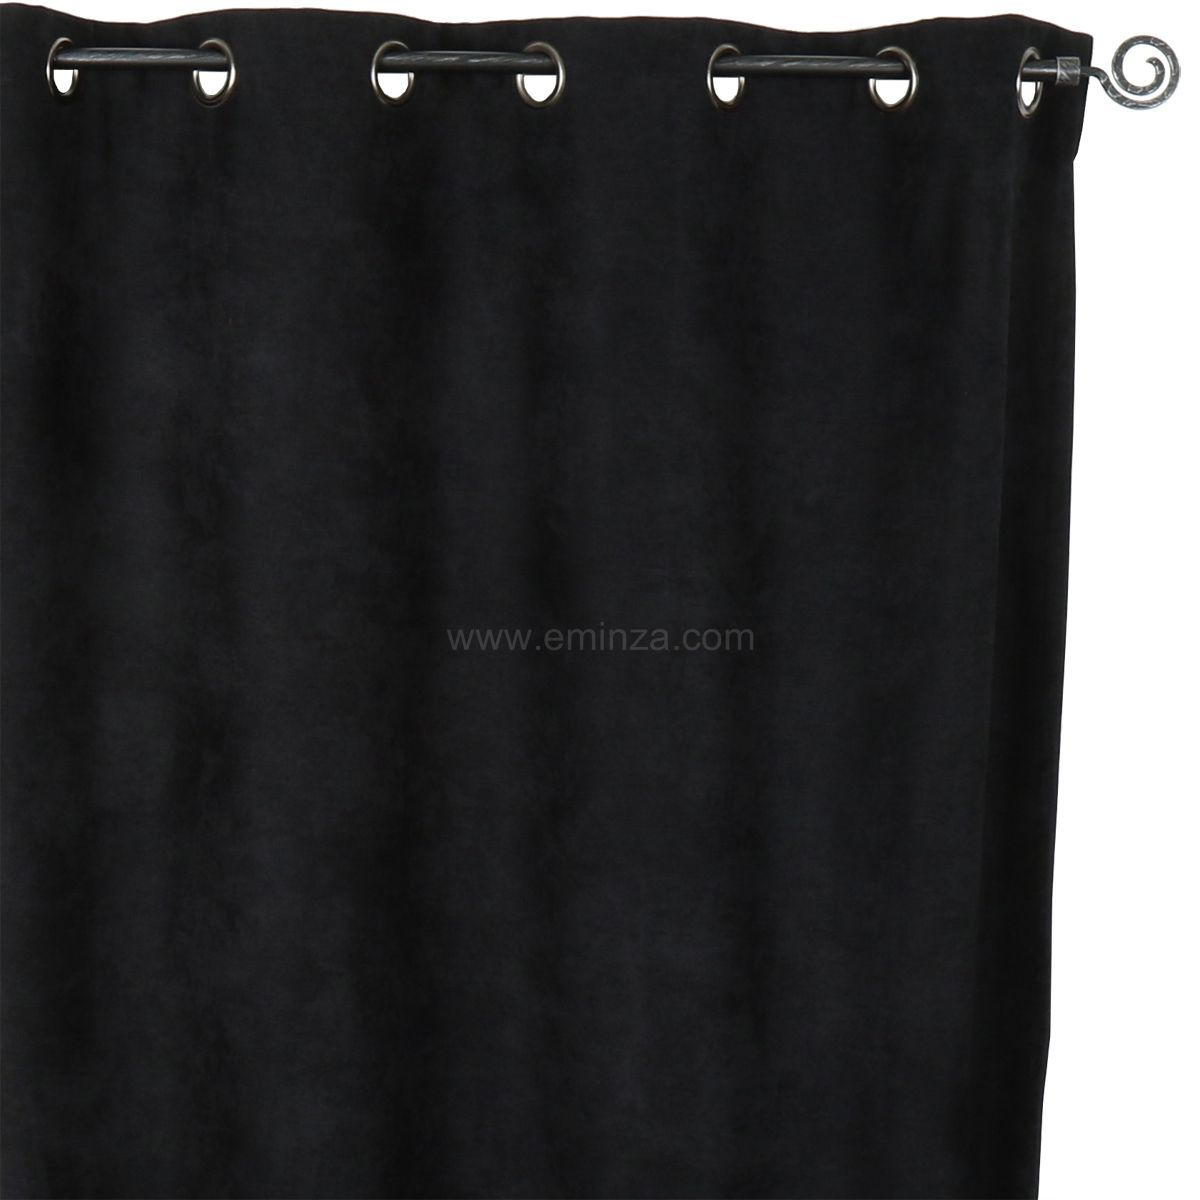 rideau occultant isolant 140 x h260 cm alaska noir rideau isolant eminza. Black Bedroom Furniture Sets. Home Design Ideas